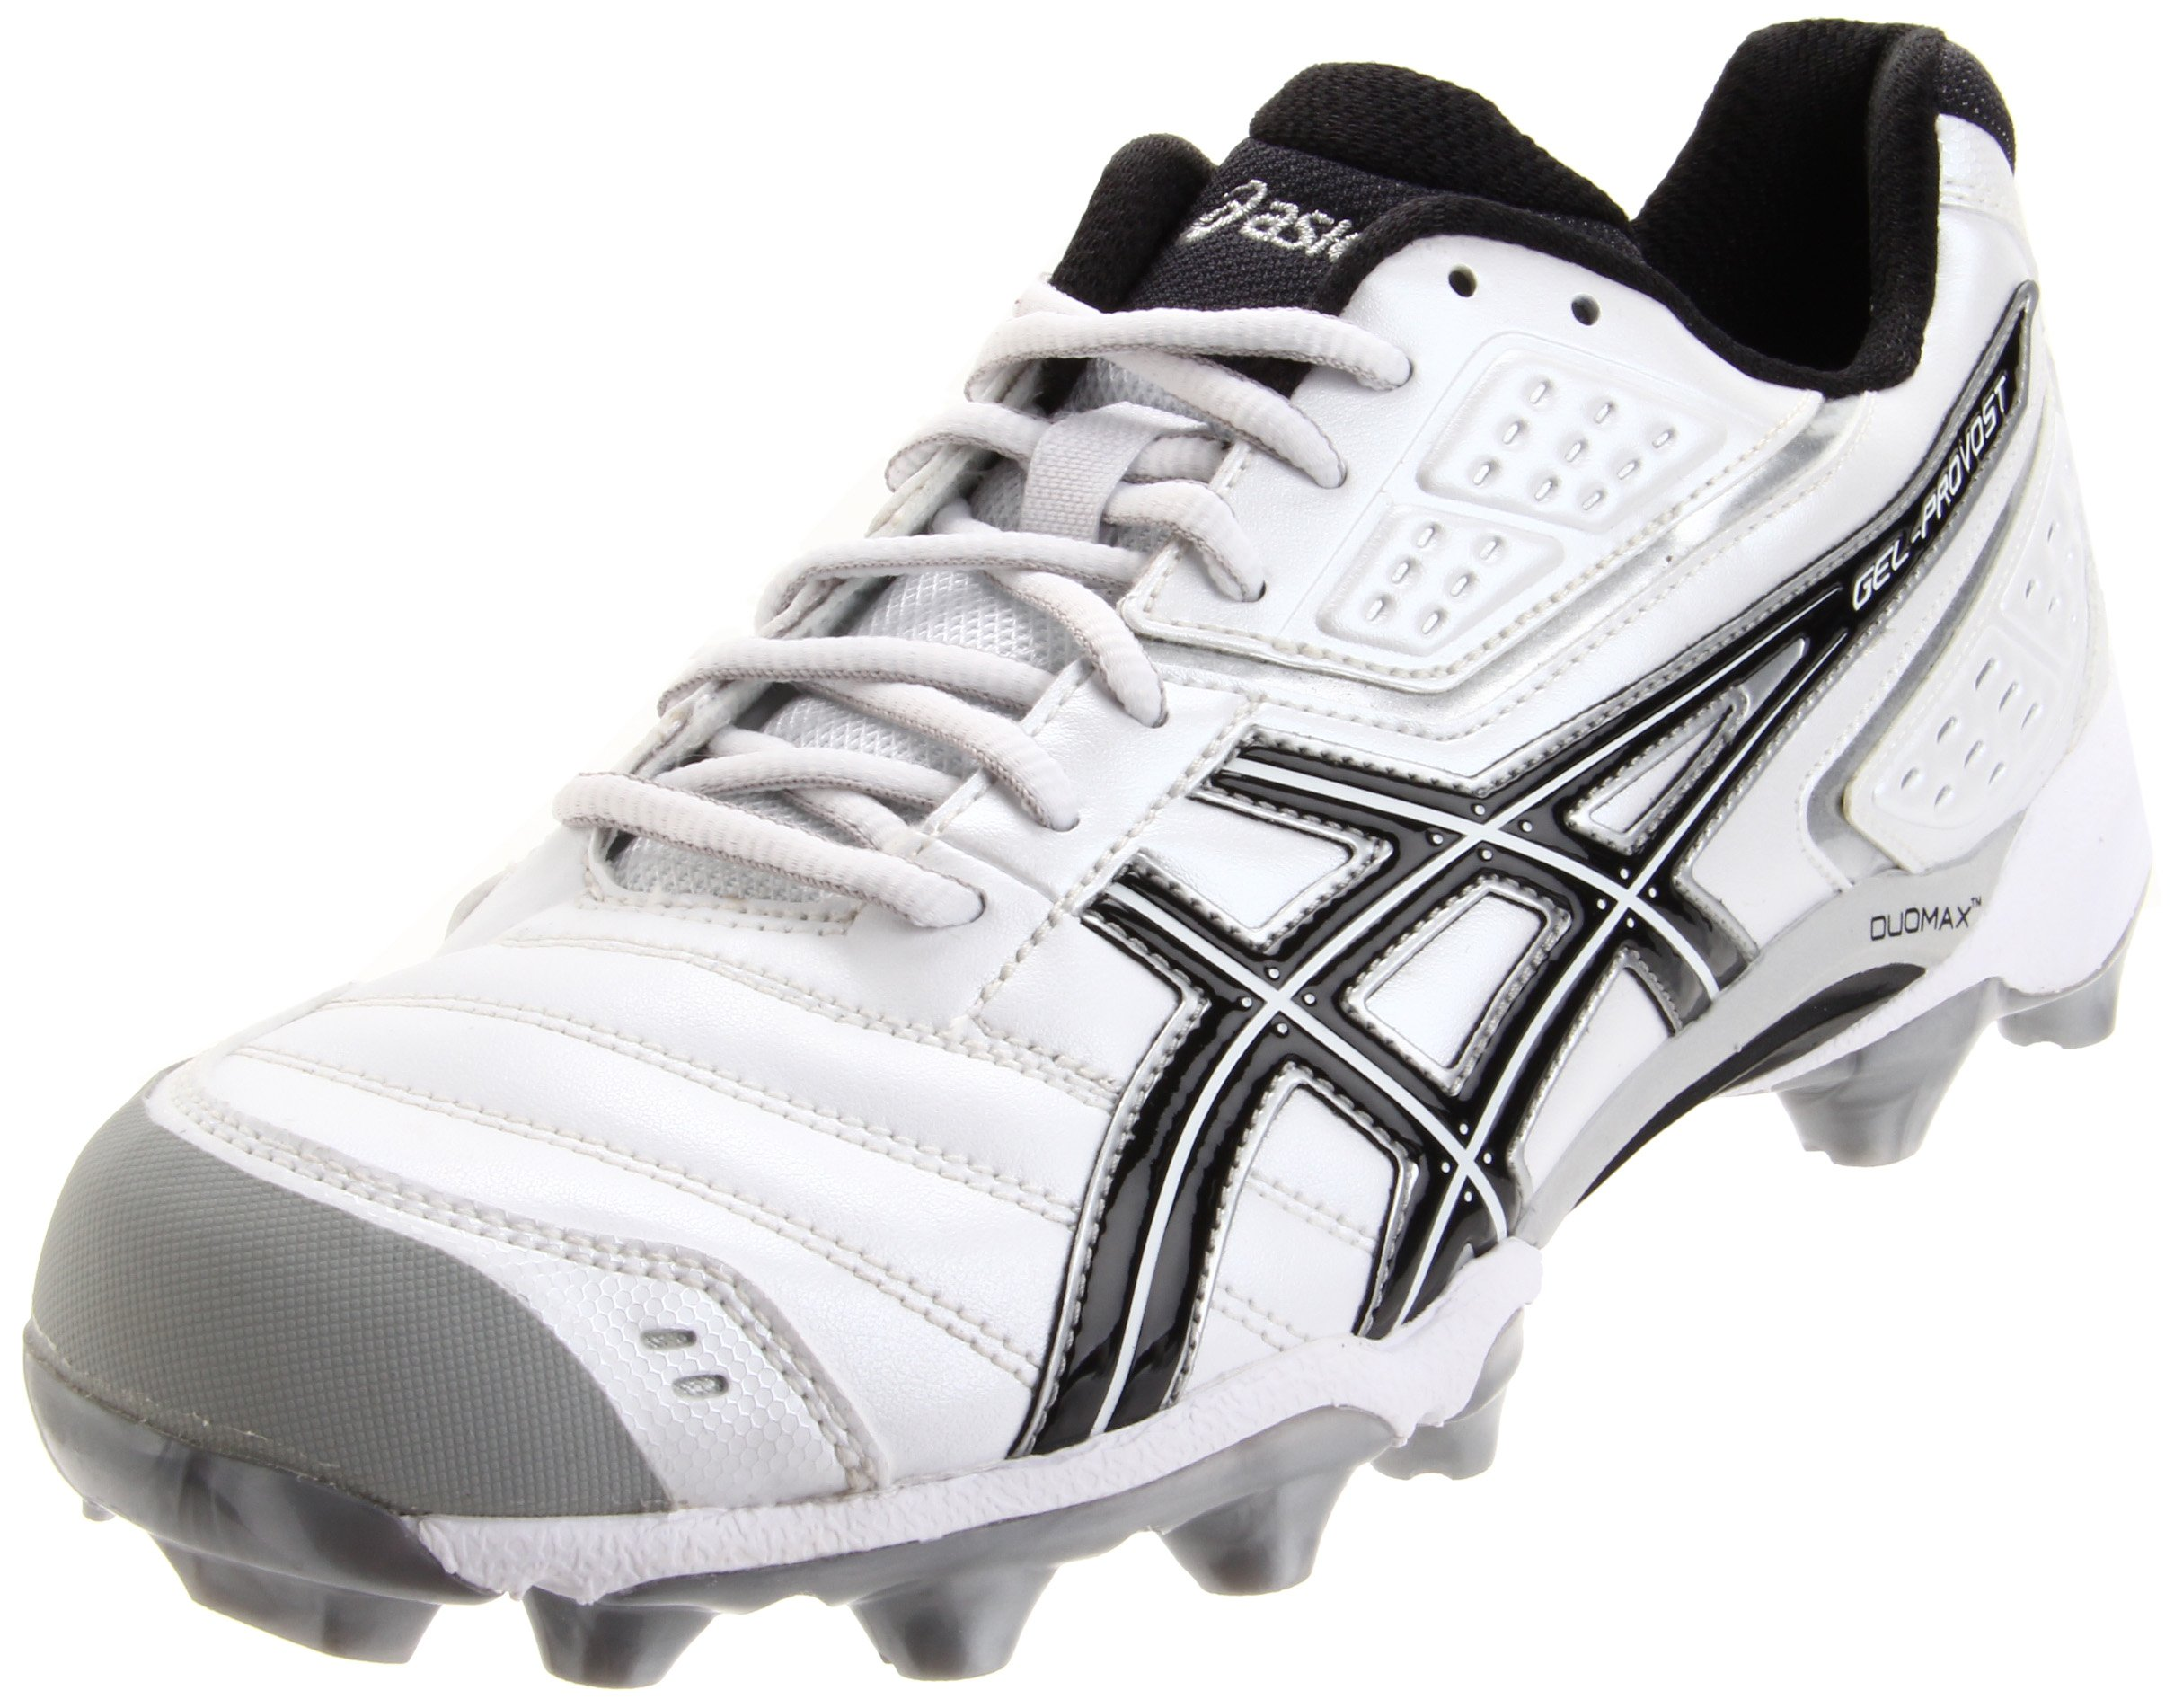 ASICS Men's GEL-Provost Low Sport Style Sneaker,White/Black/Silver,15 M US